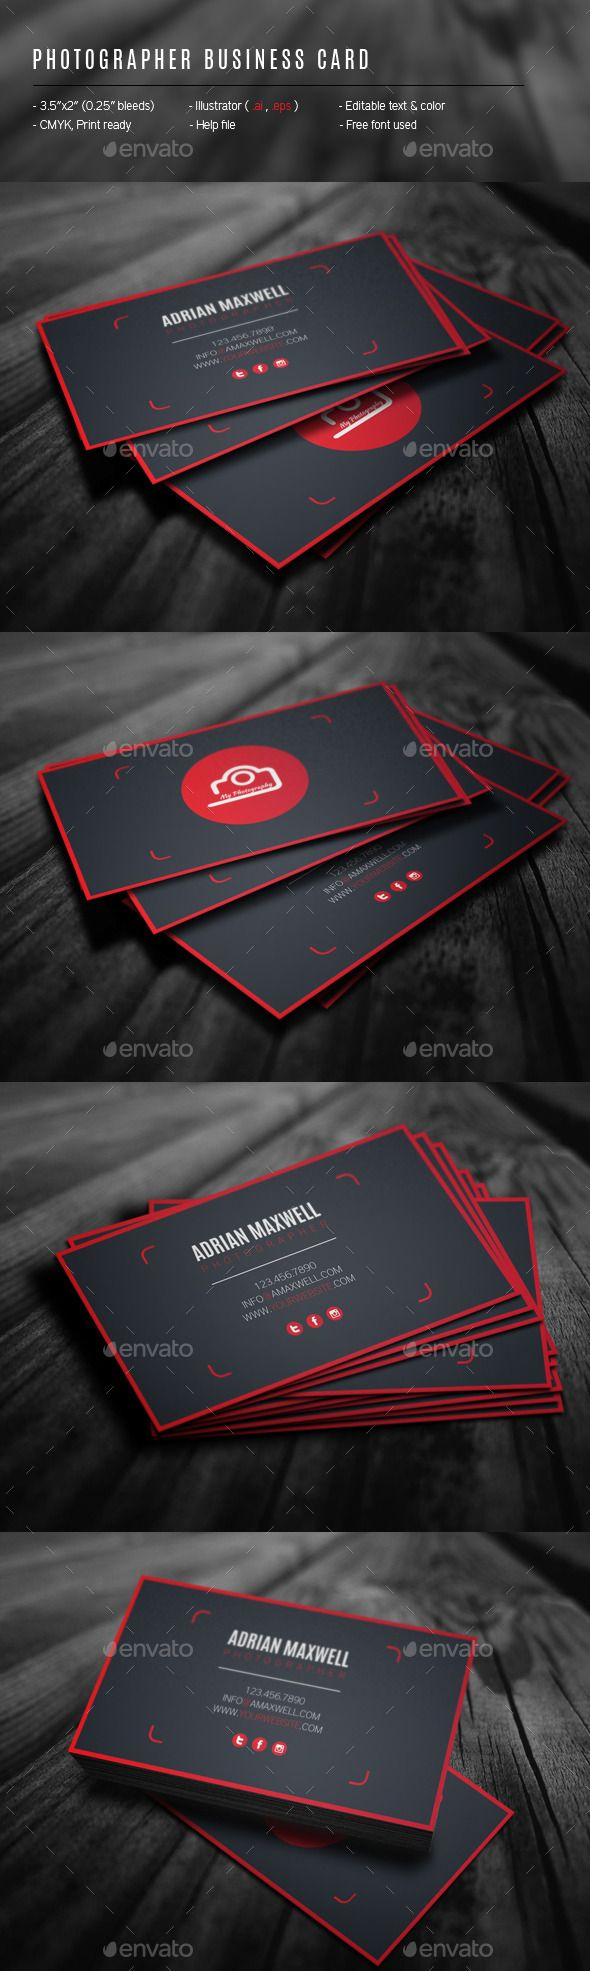 Best 25+ Photographer business cards ideas on Pinterest ...